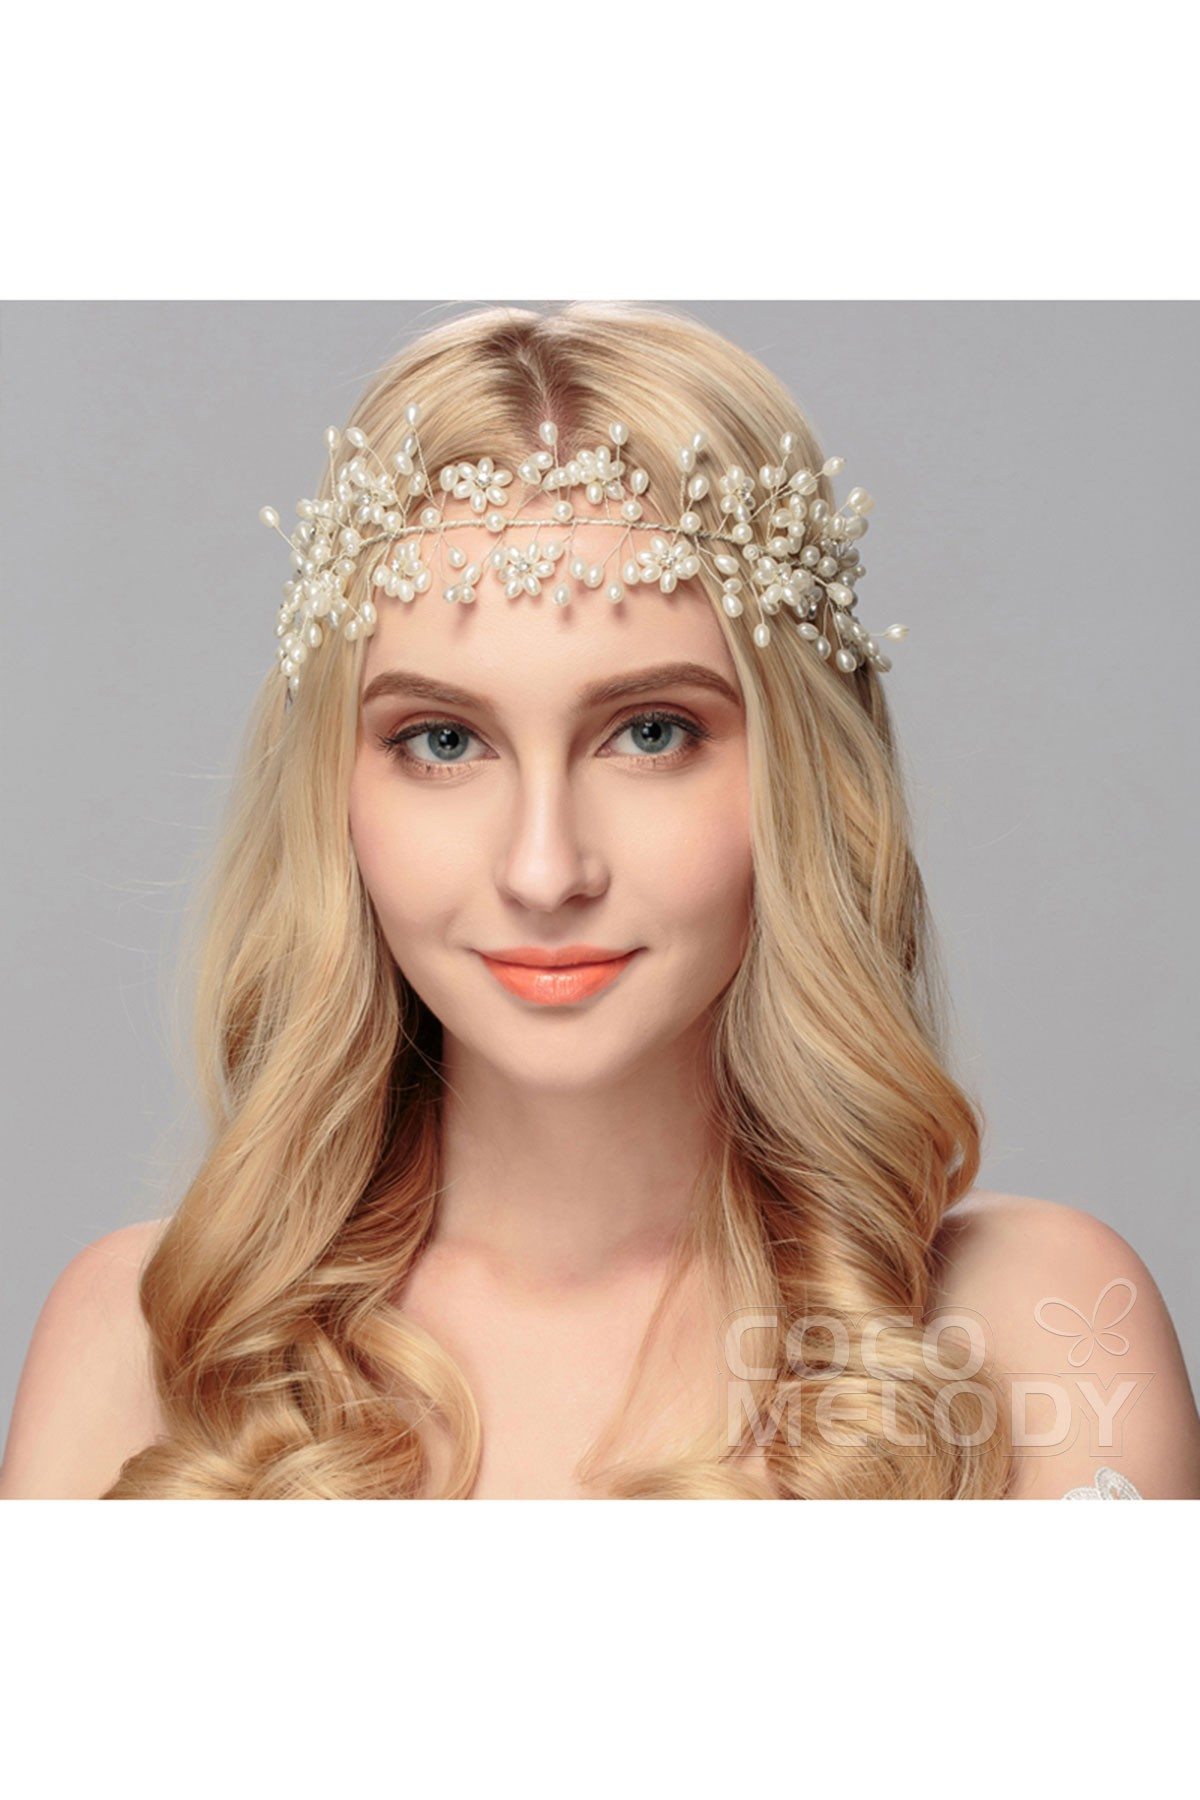 Sweet Silver Cloud Alloy Wedding Headpiece with Crystal and Imitation Pearl HS-J2888